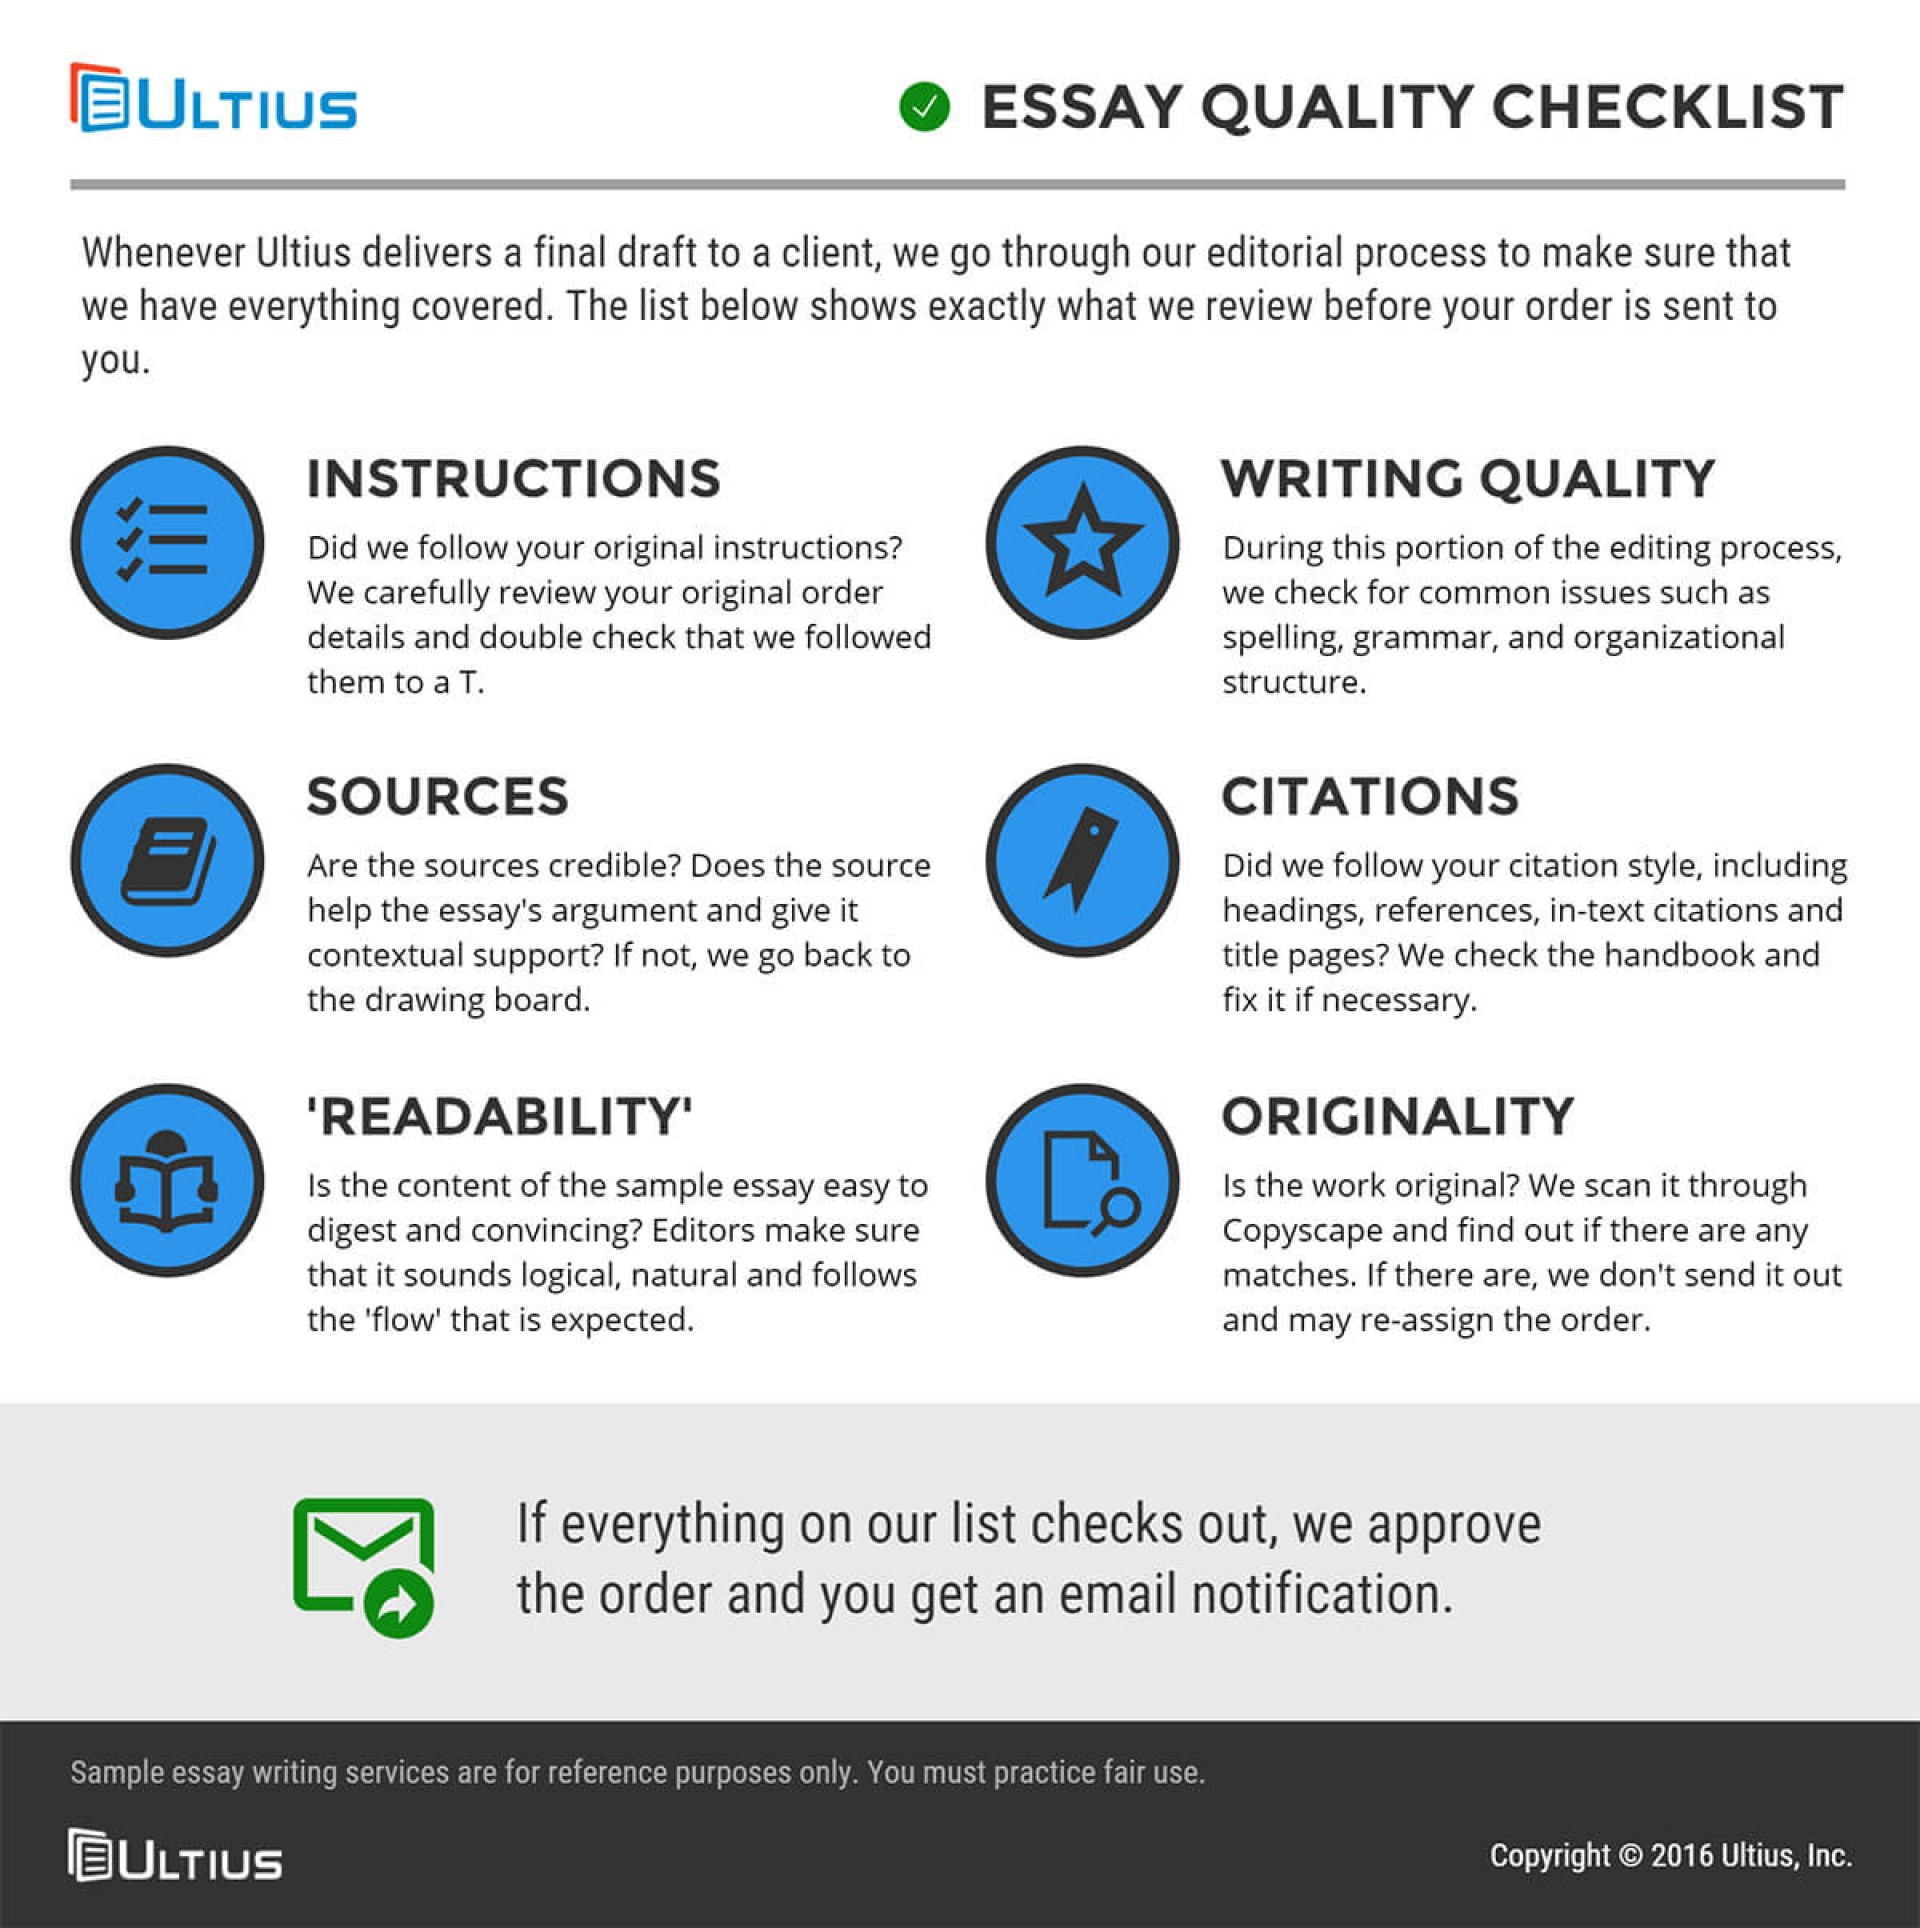 017 Purchased Essay Quality Checklist Example Writing Exceptional A Persuasive Thesis Statement For Middle School Argumentative Ppt 4th Grade 1920